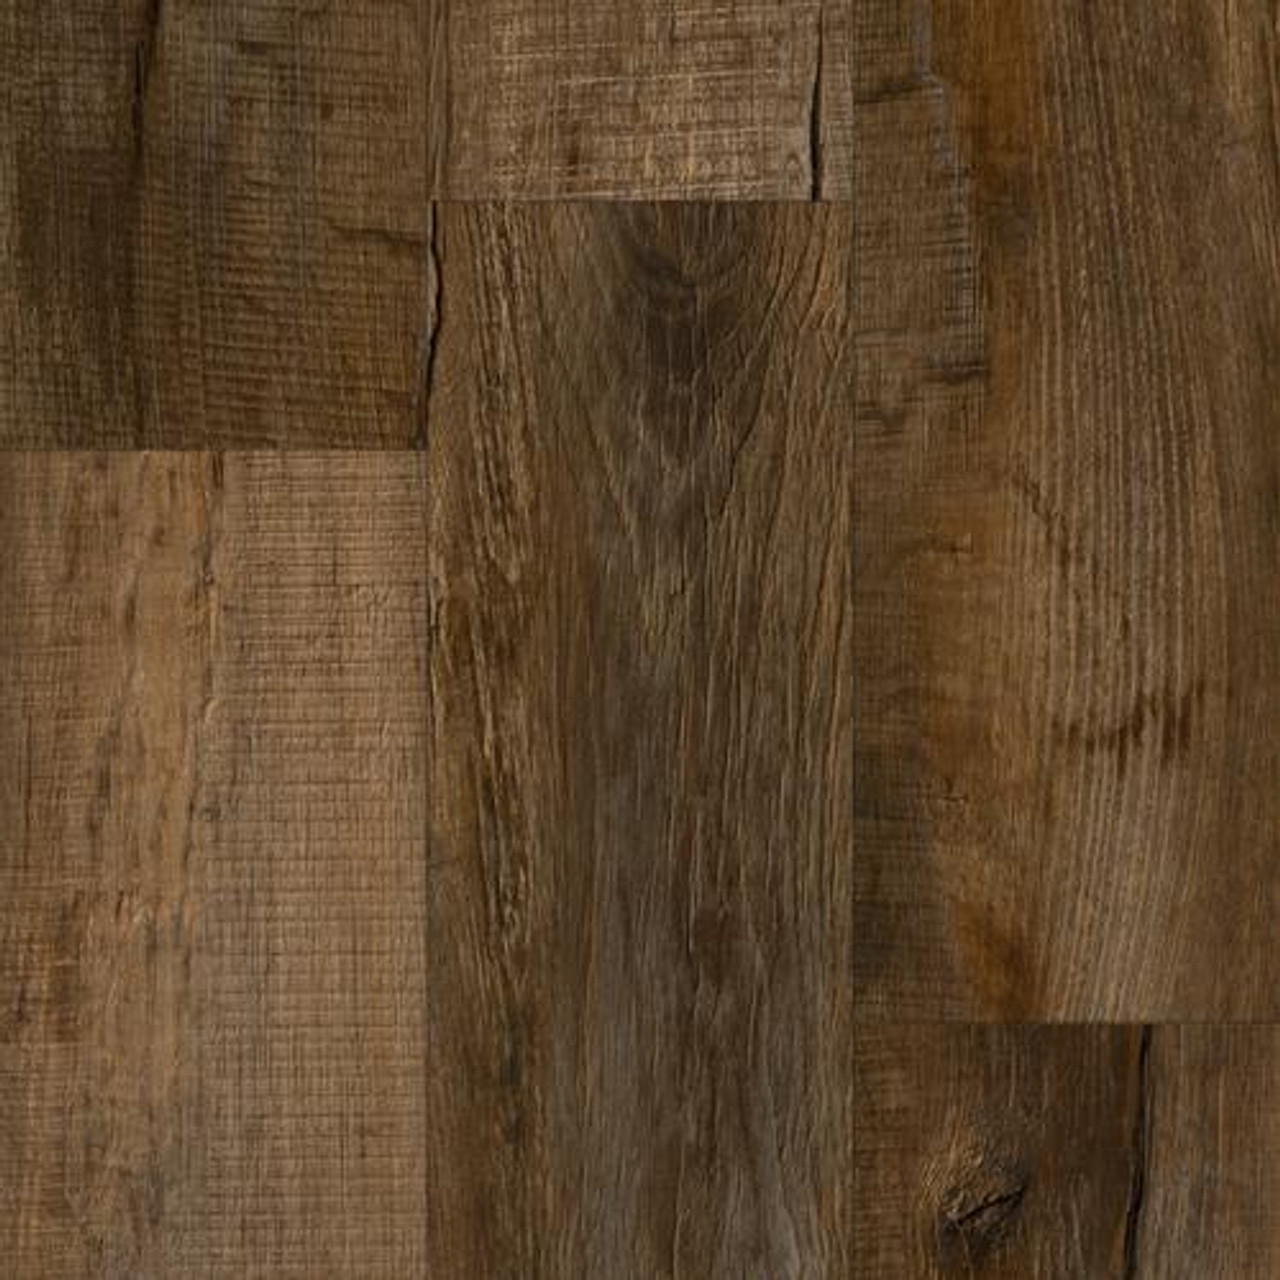 Tarkett Vericore Milled Hickory Vinyl Plank Flooring 18 73 Sq Ft Ctn Go For Floors